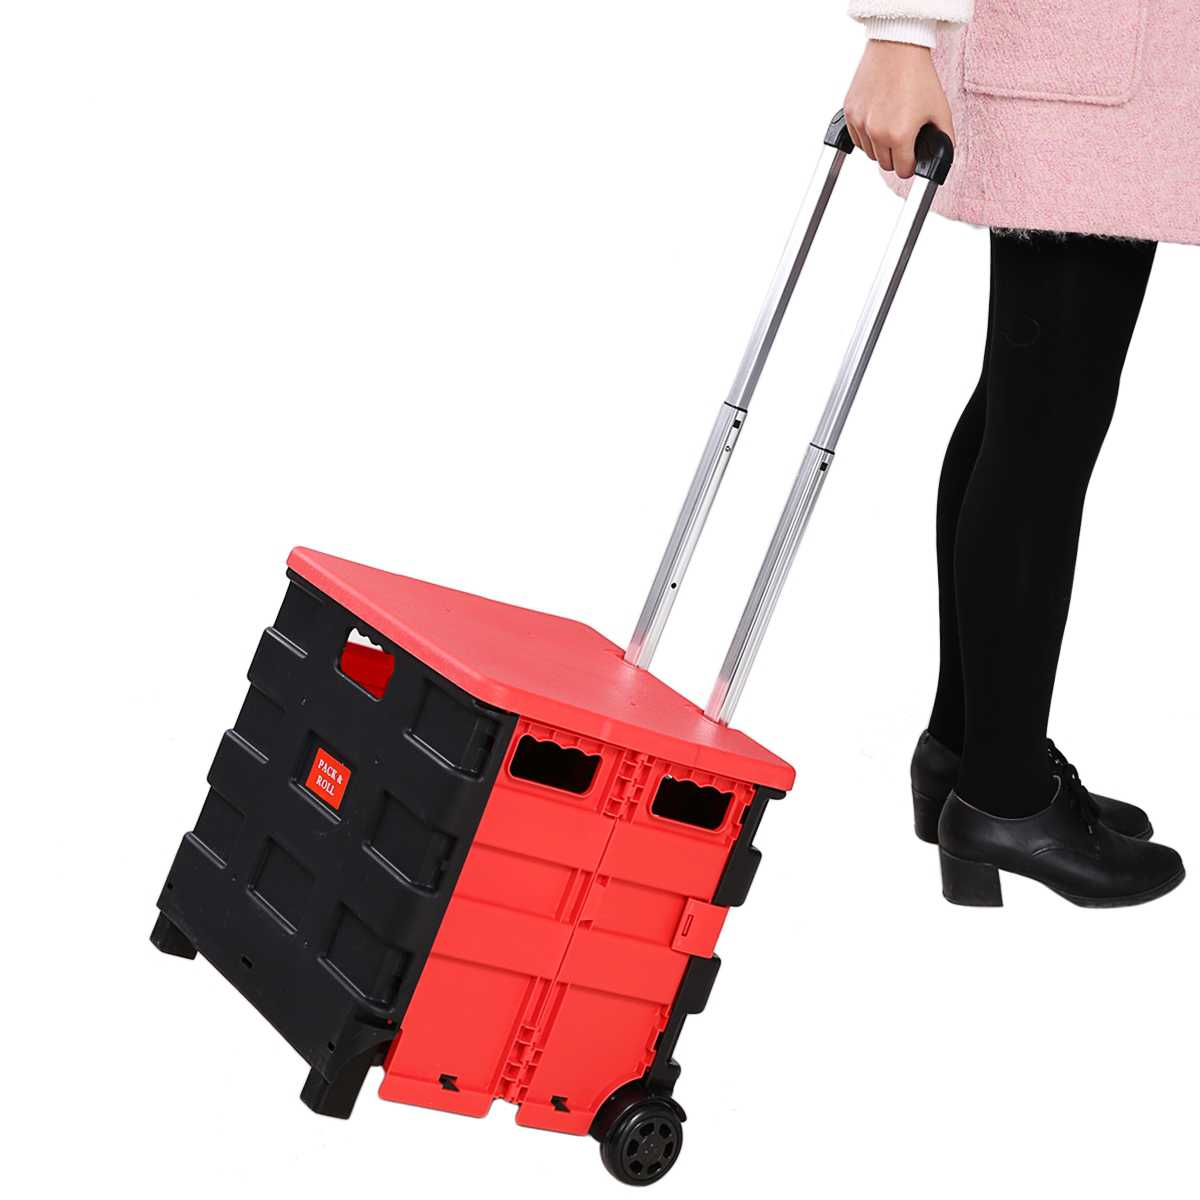 Clearance&Sales!Folding Shopping Cart - Utilitic Folding Shopping Cart - Transport Up to 44.1 Pounds (Made by High Grade PP), Black Red BTC